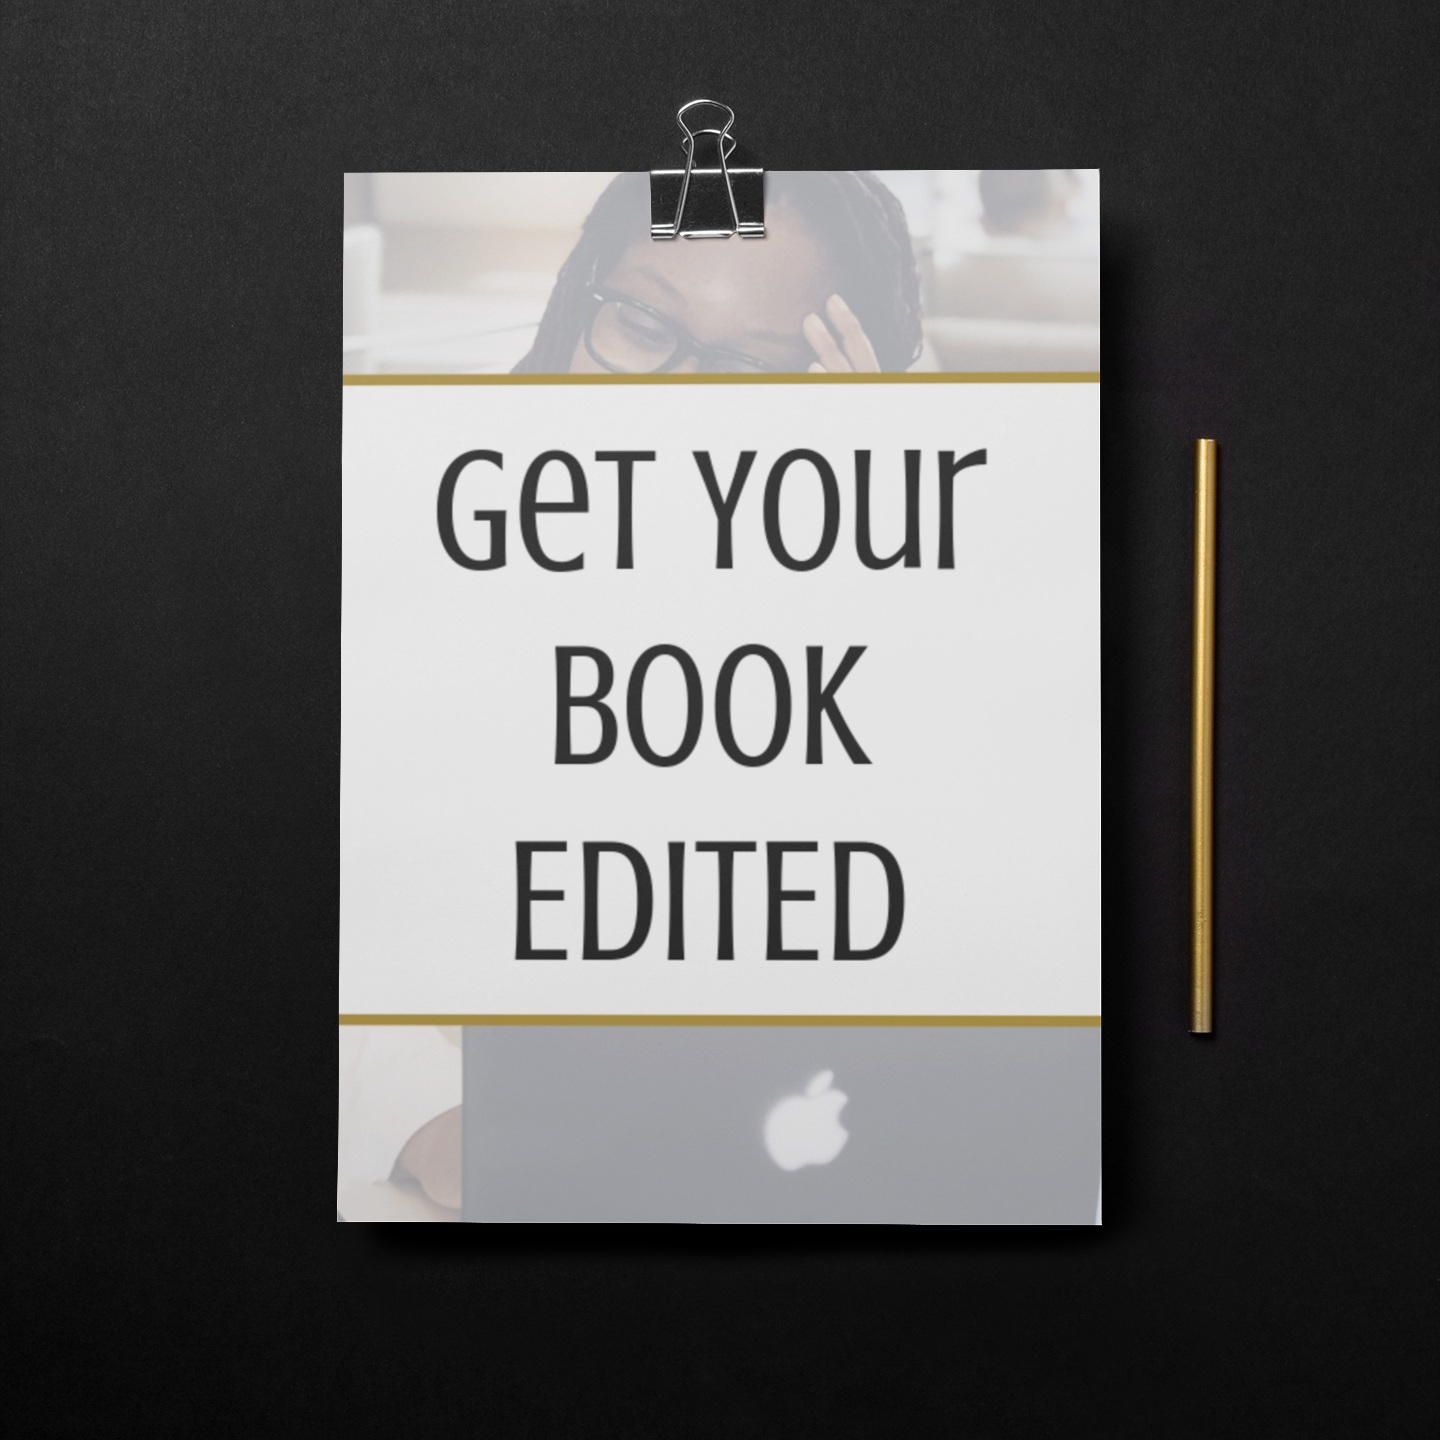 Get+Your+Book+Edited+at+N.HARV.jpg